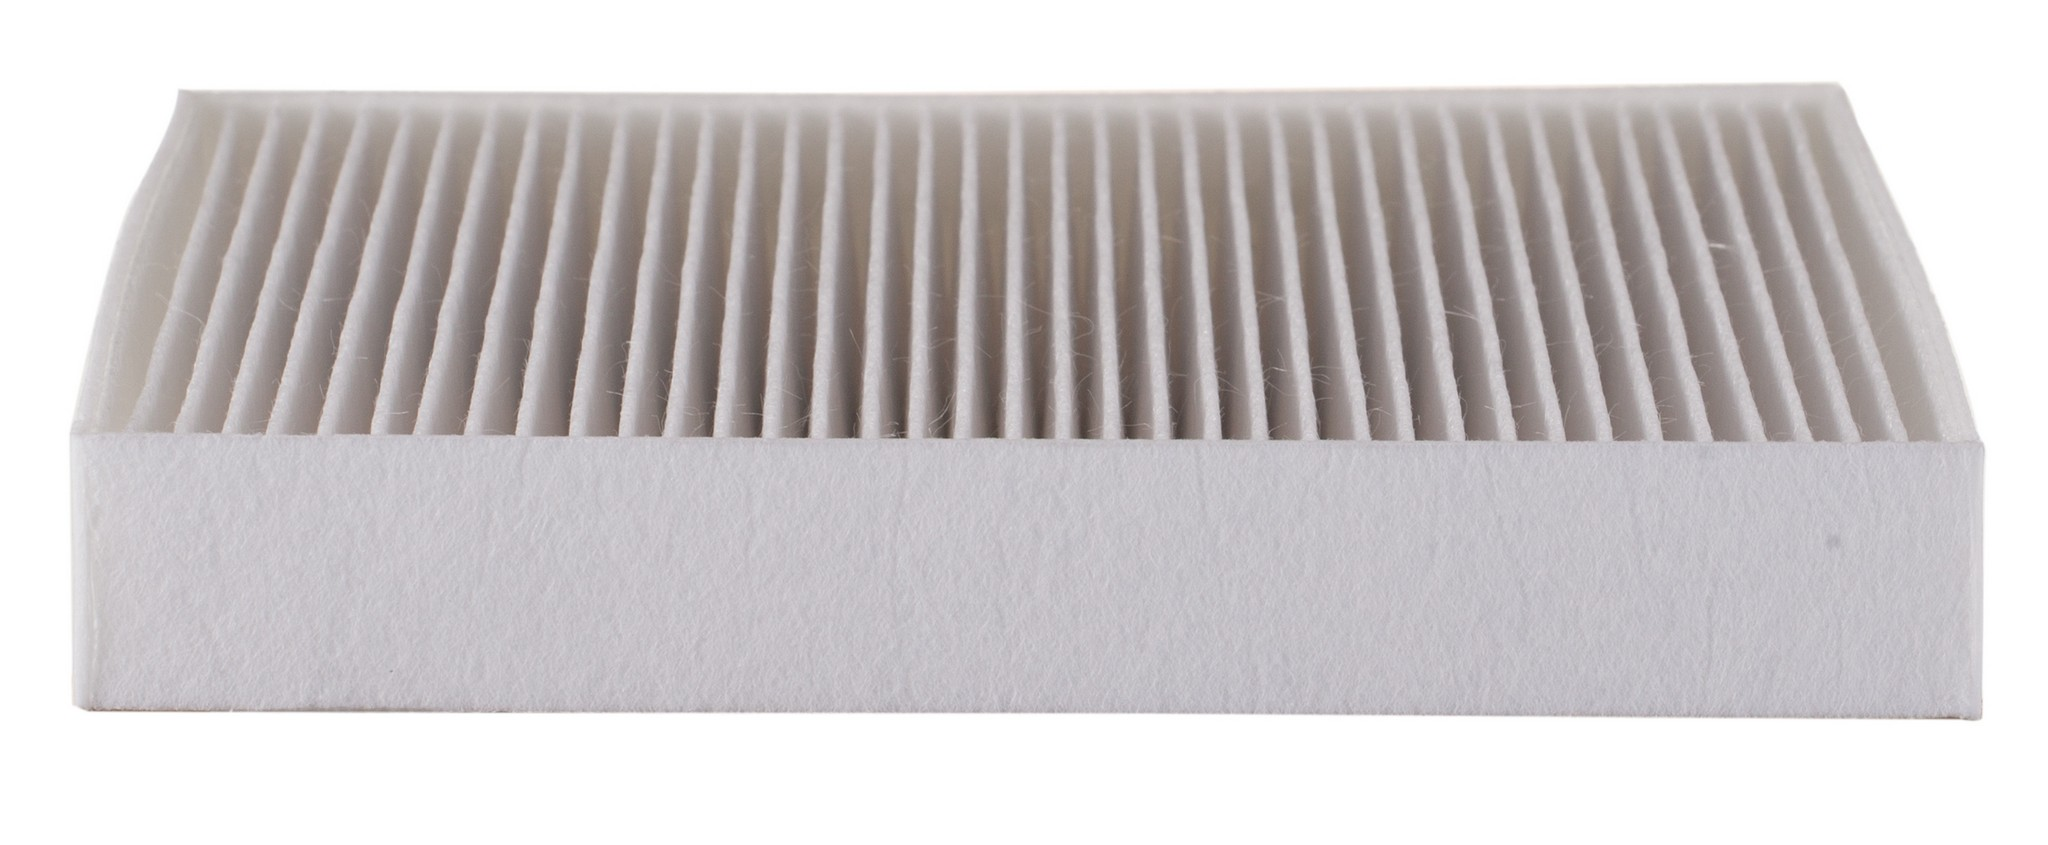 pro heating conditioning cabins cabin parts wix air toyota filter tec